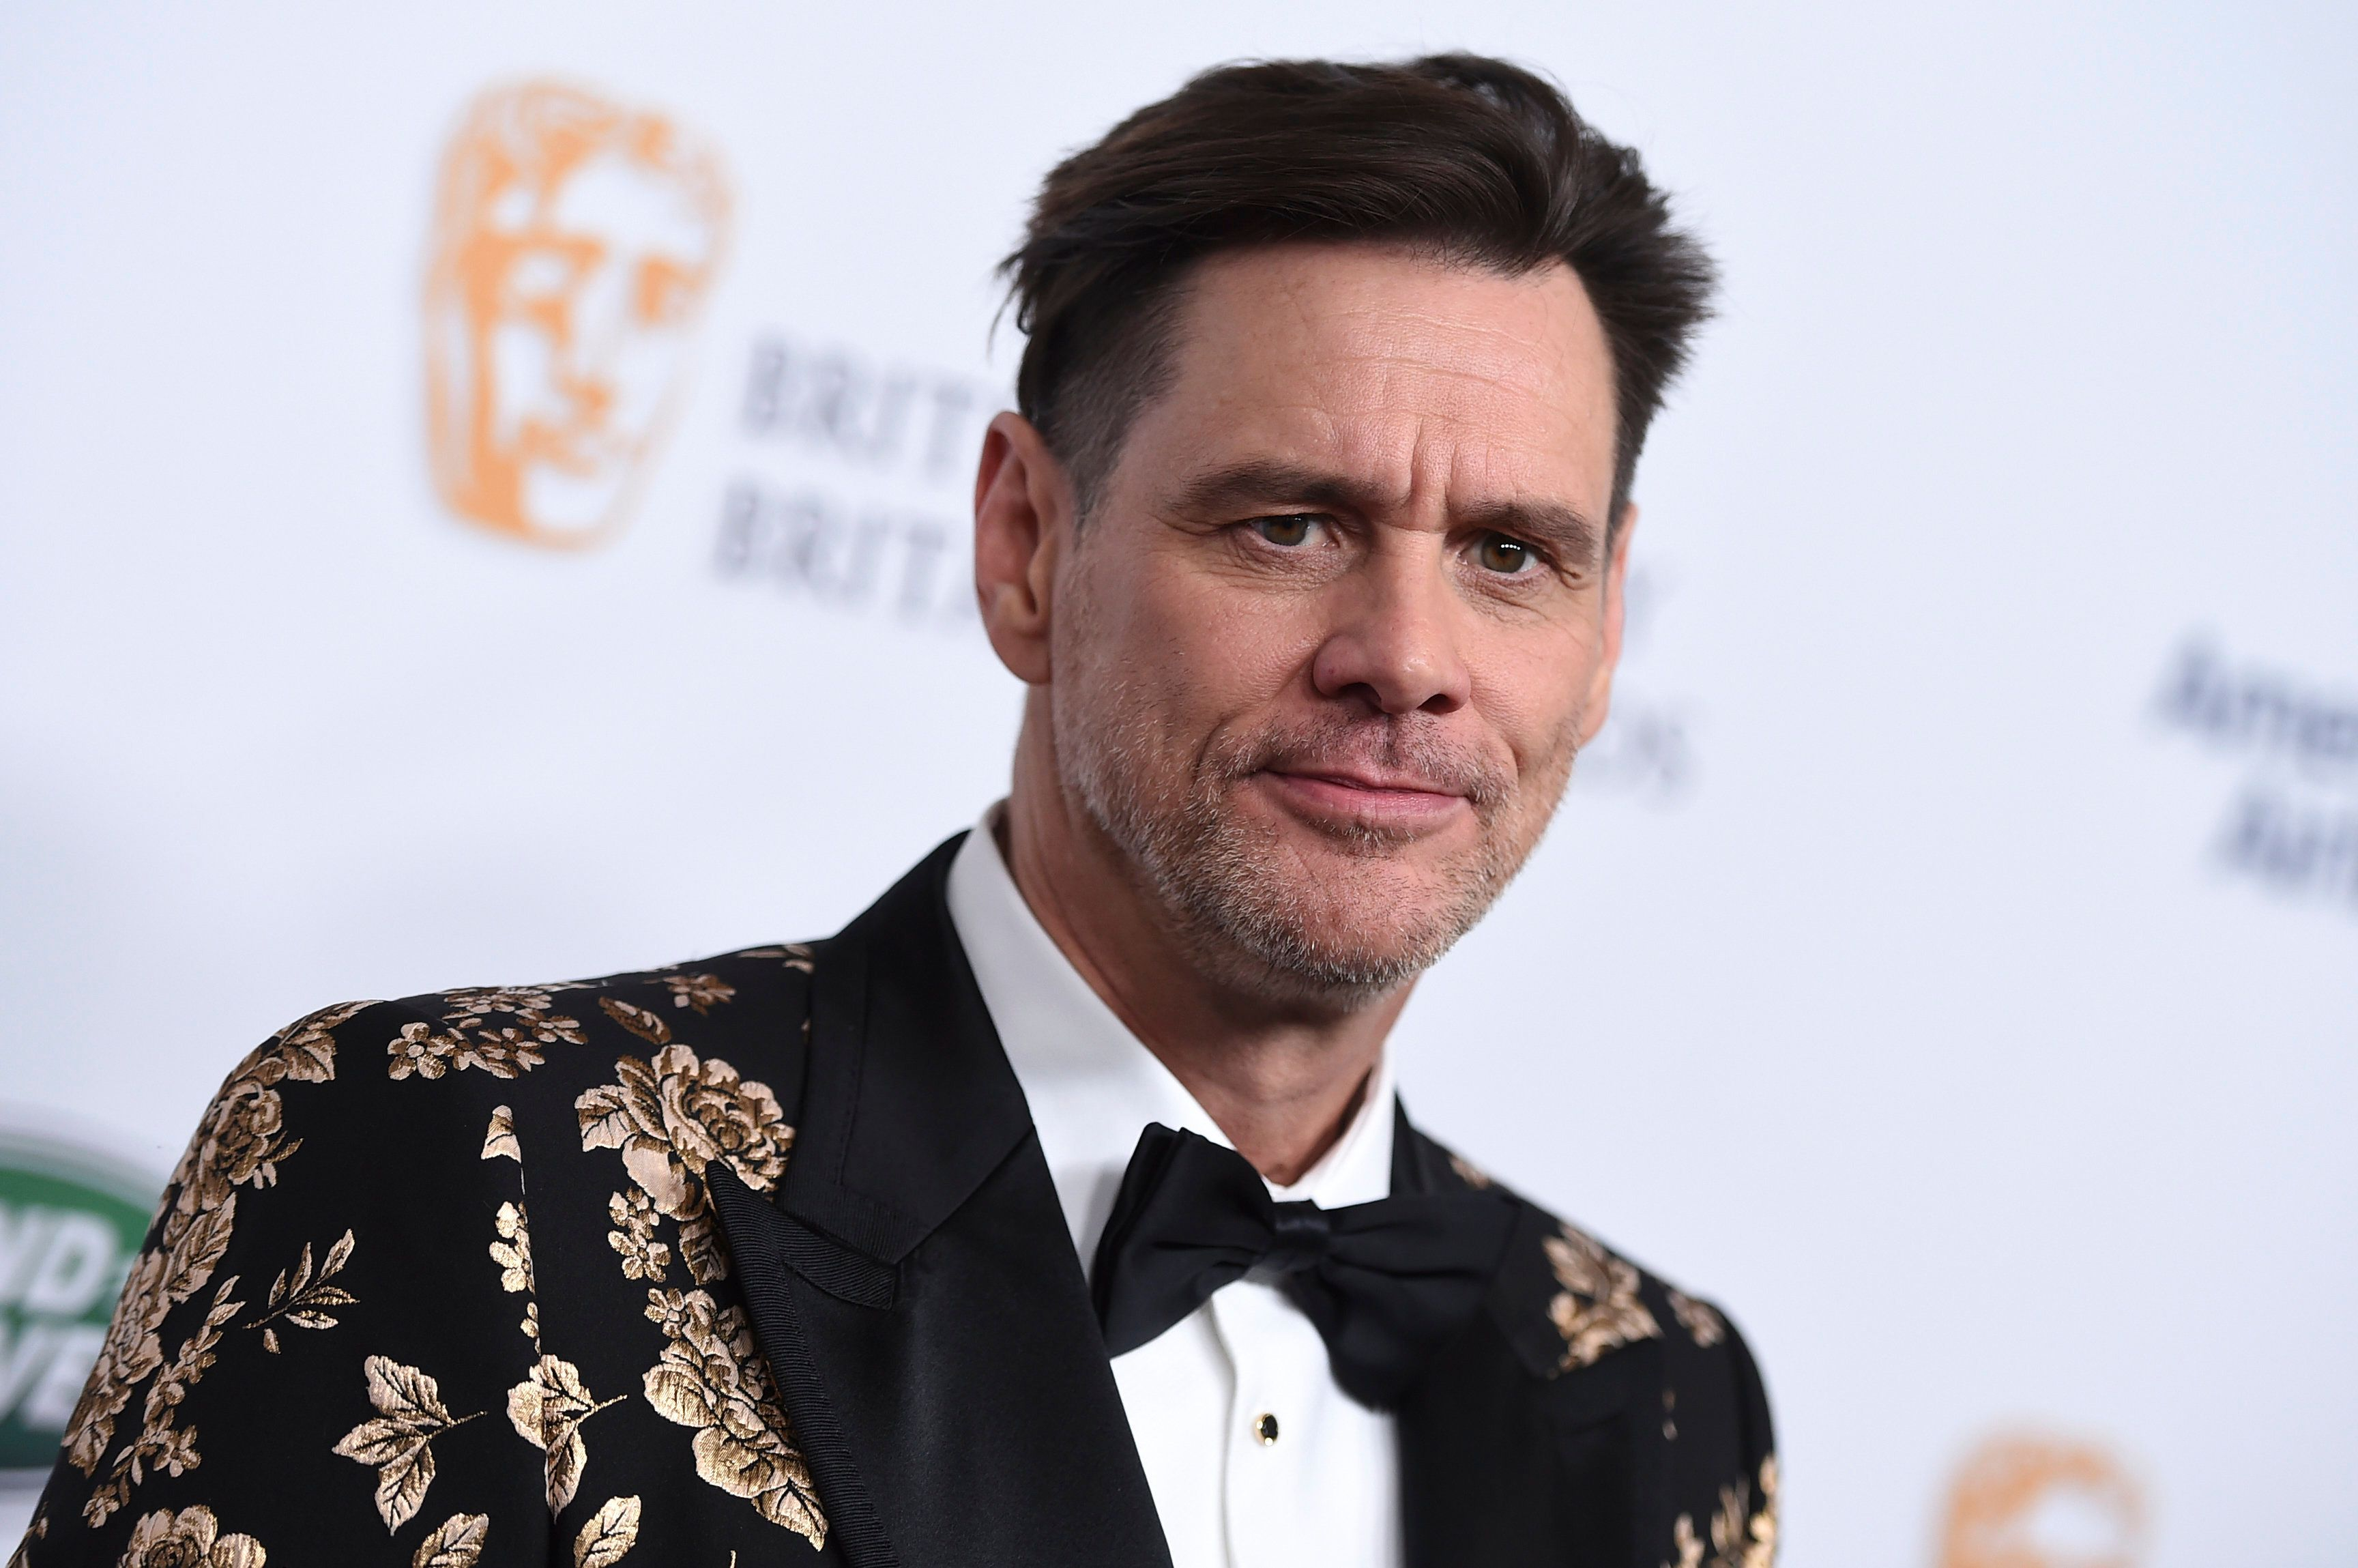 Jim Carrey arrives at the 2018 BAFTA Los Angeles Britannia Awards at the Beverly Hilton on Friday, Oct. 26, 2018 in Beverly Hills, Calif. (Photo by Jordan Strauss/Invision/AP)